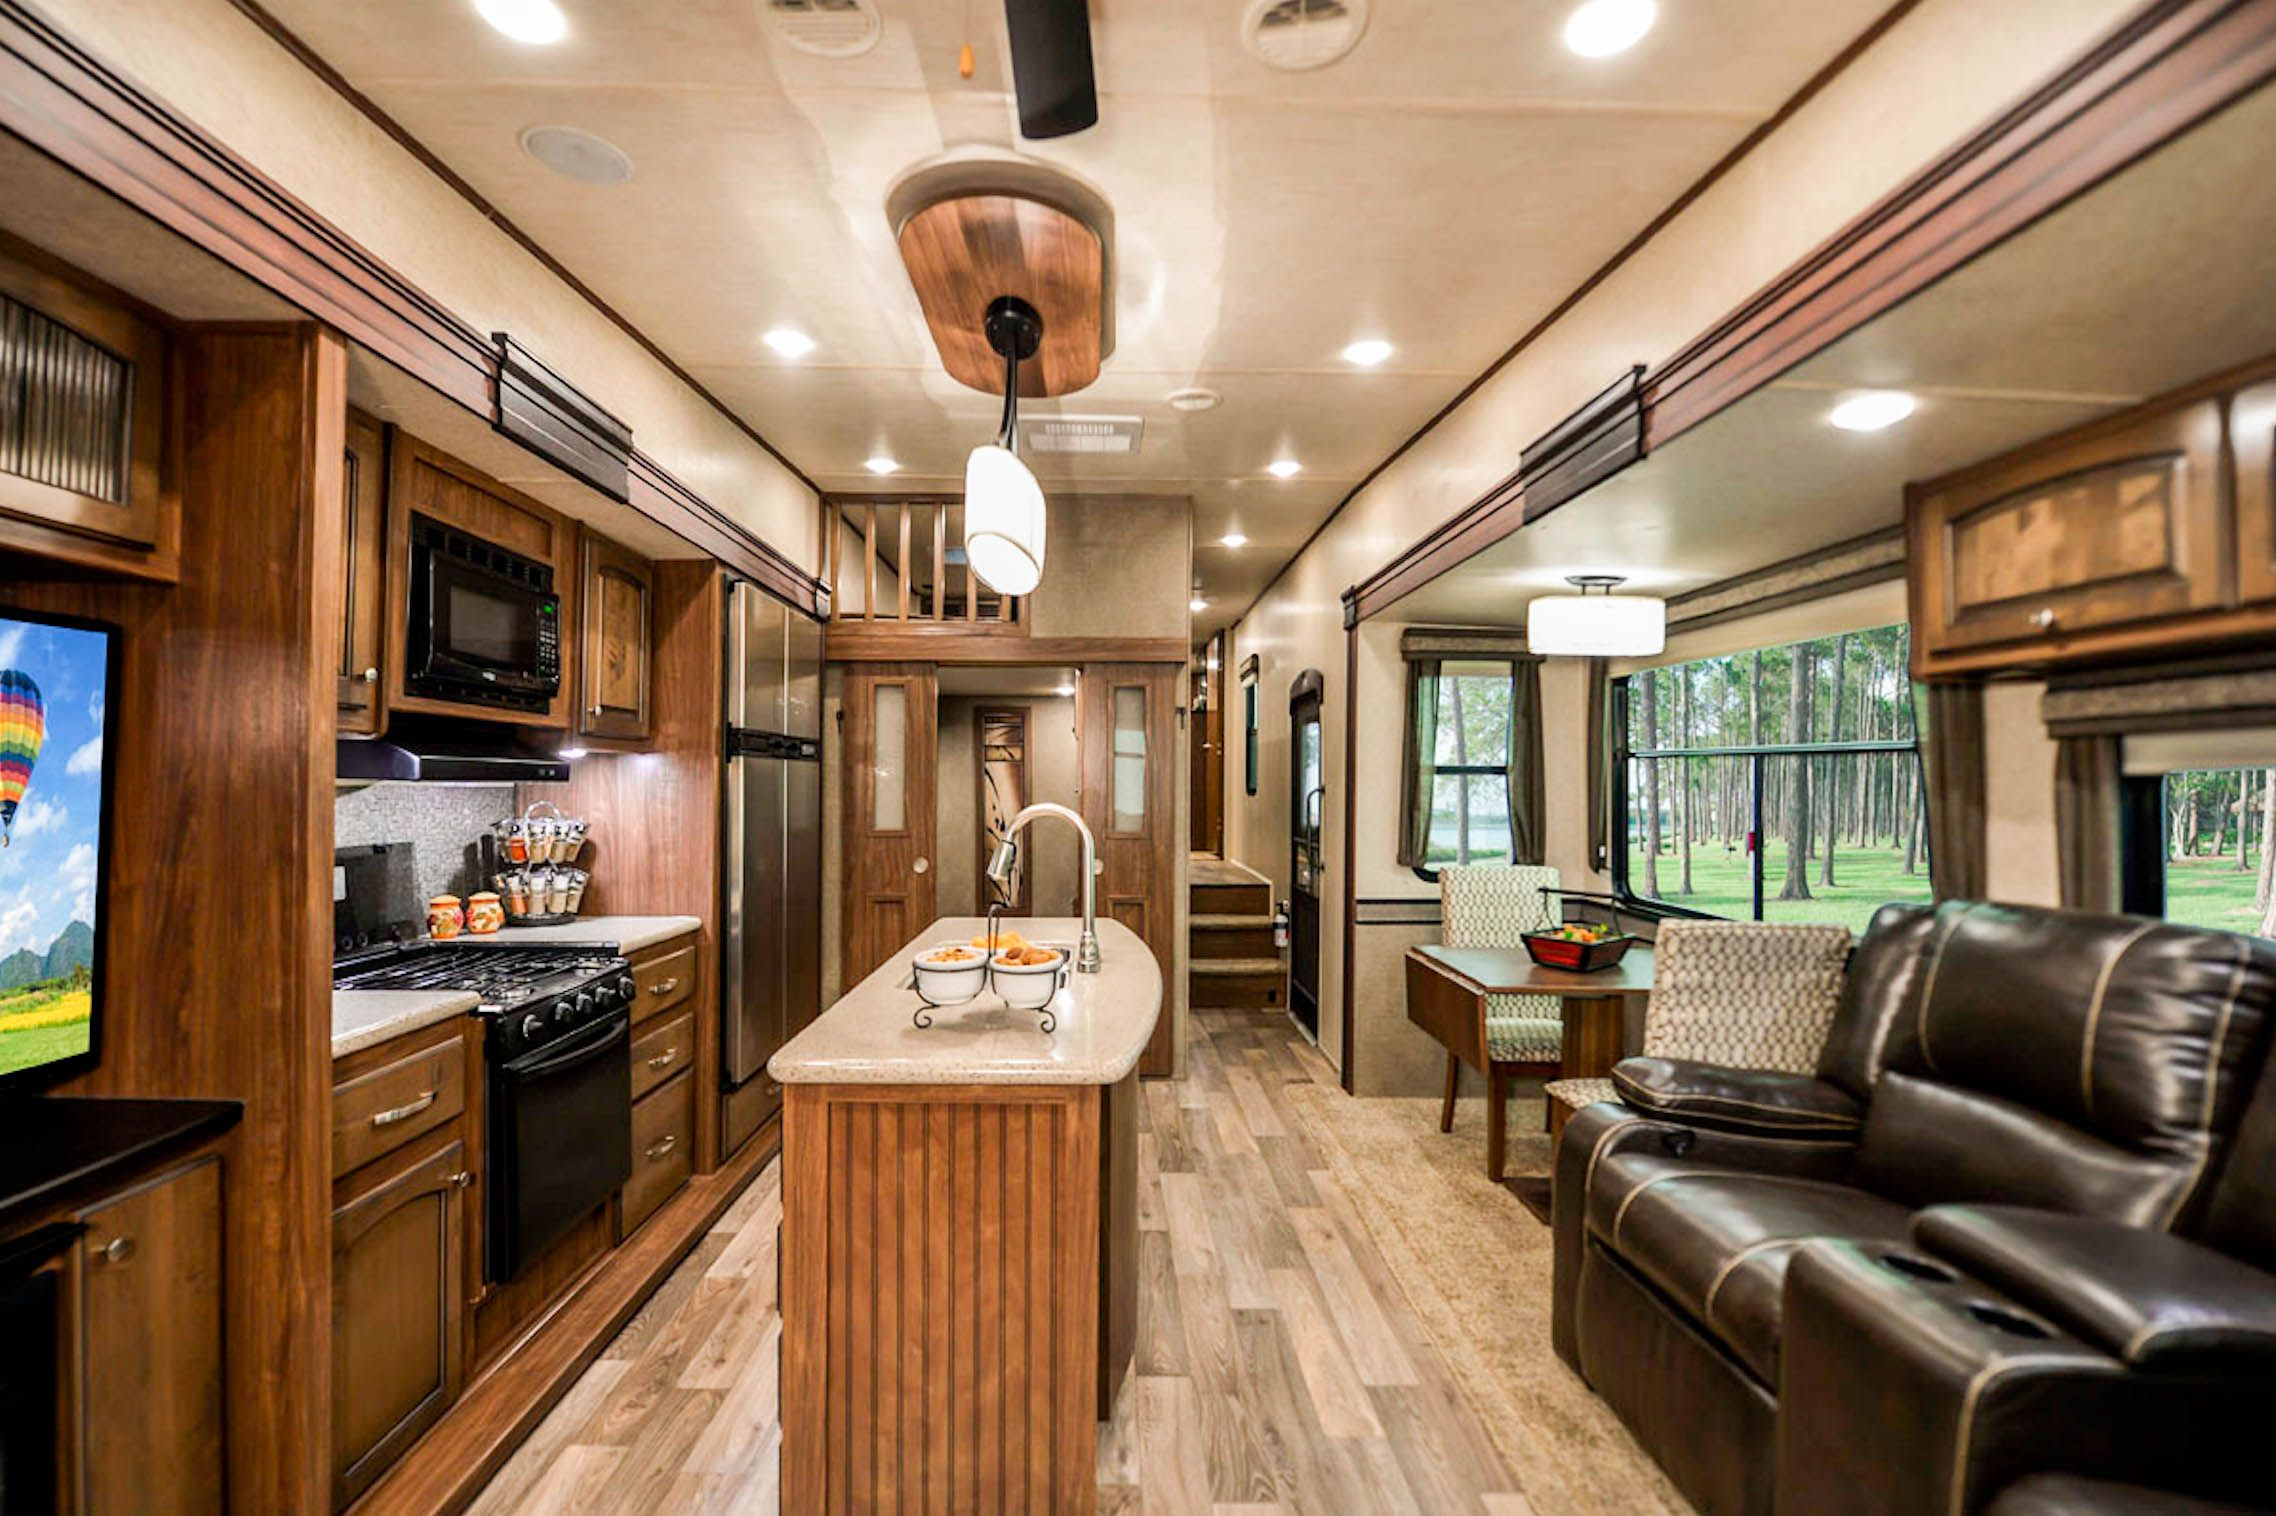 Good Morning Myheartland Community We Have A New Sneak Peek Of The 2016 Elkridge 39mbhs Which Features Ex Small Spaces Toy Hauler Travel Trailer Rv World